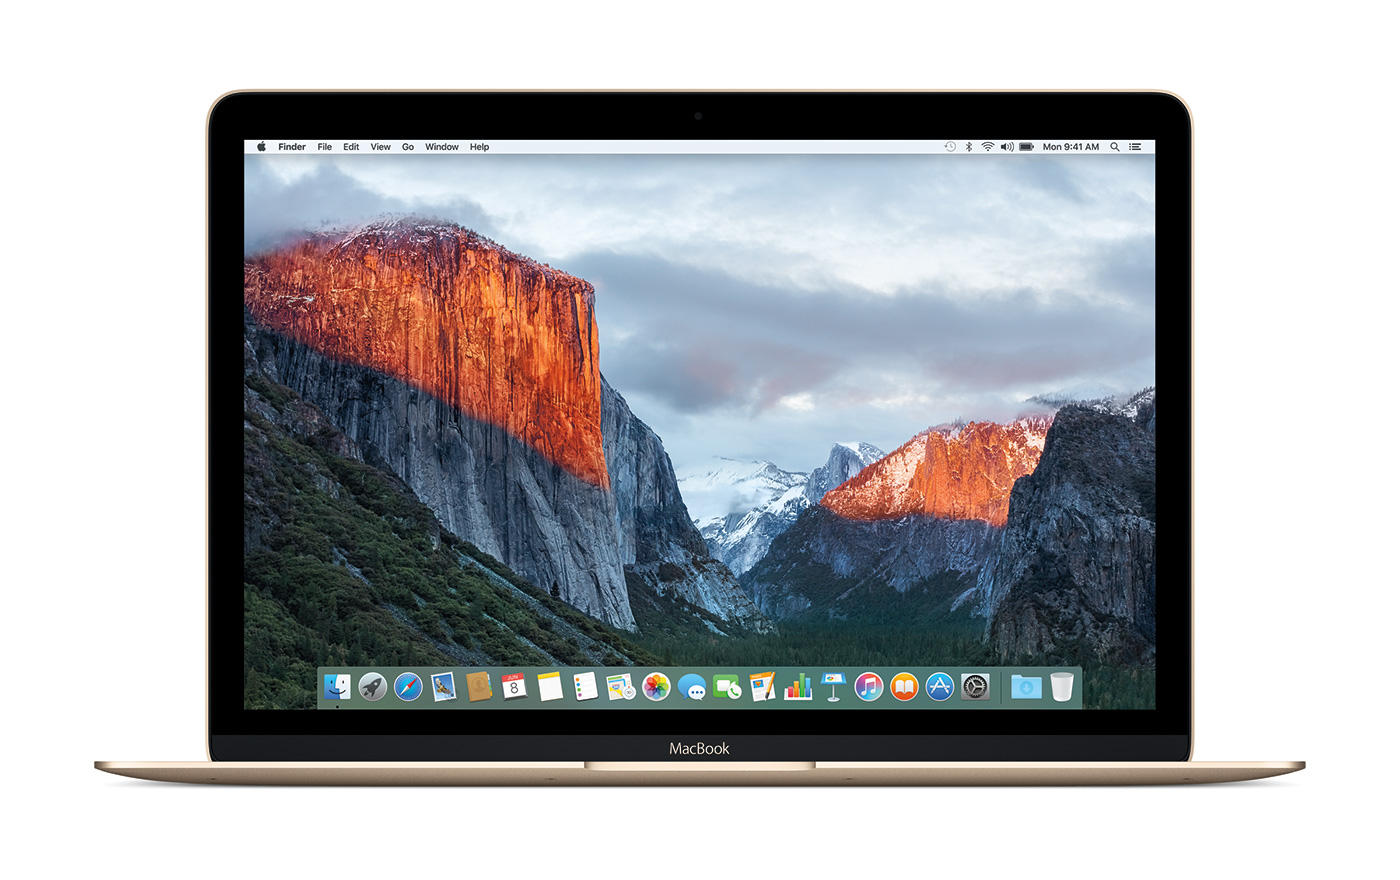 OS X El Capitan MacBook